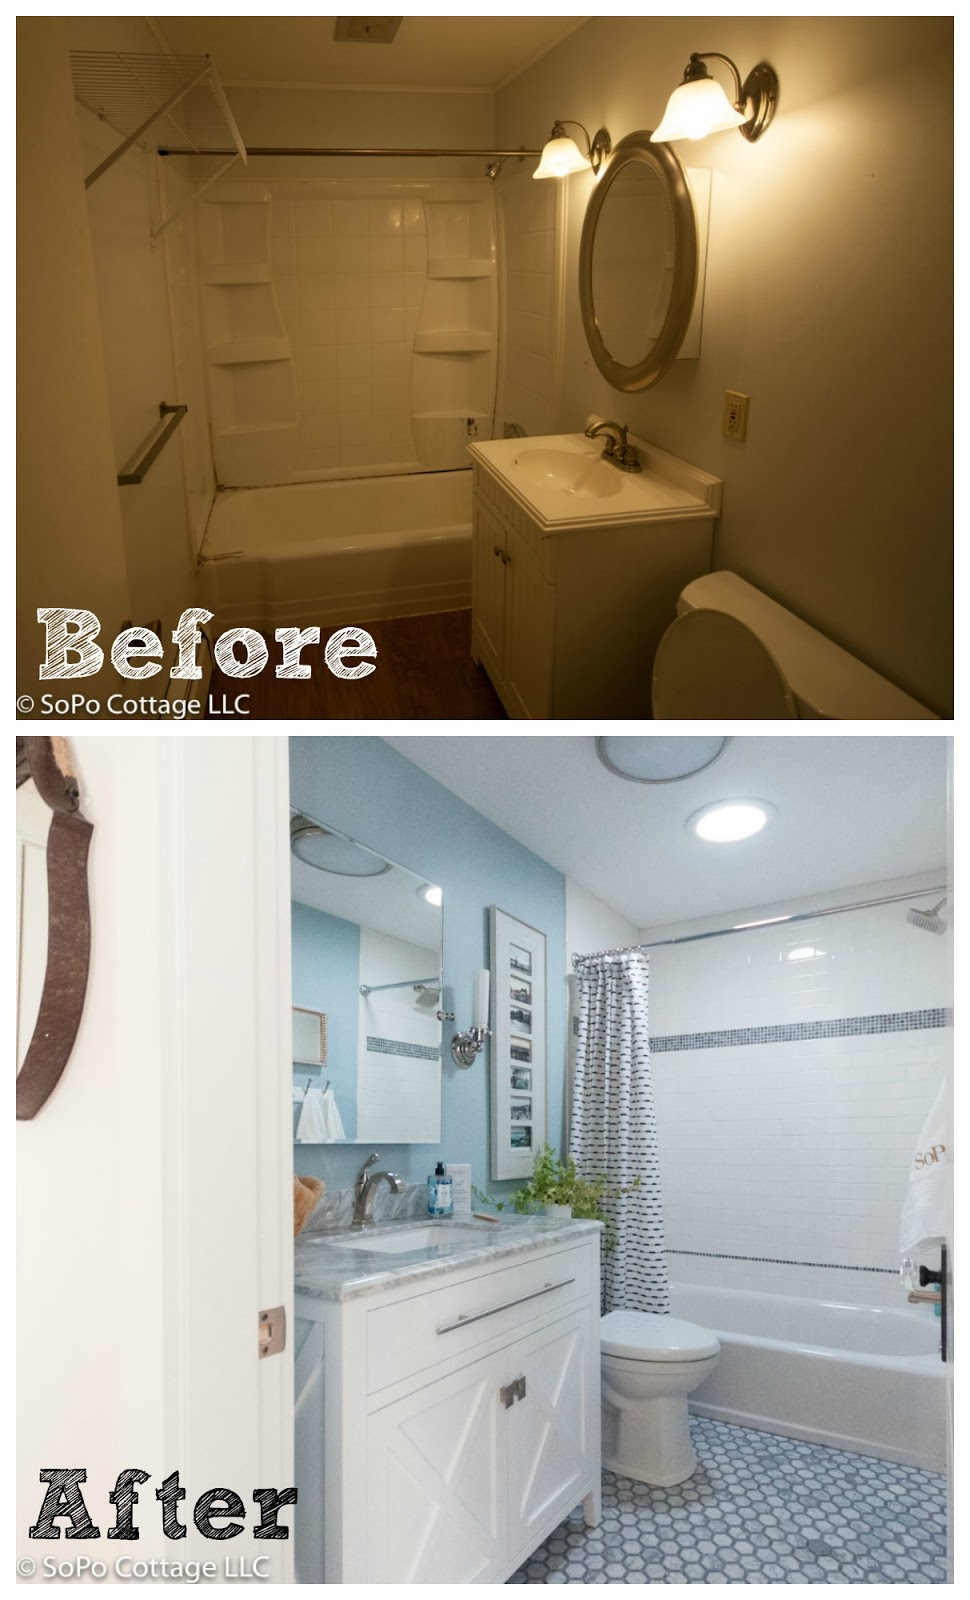 Sopo Cottage 1960 Ranch Bathroom Renovation Before And After